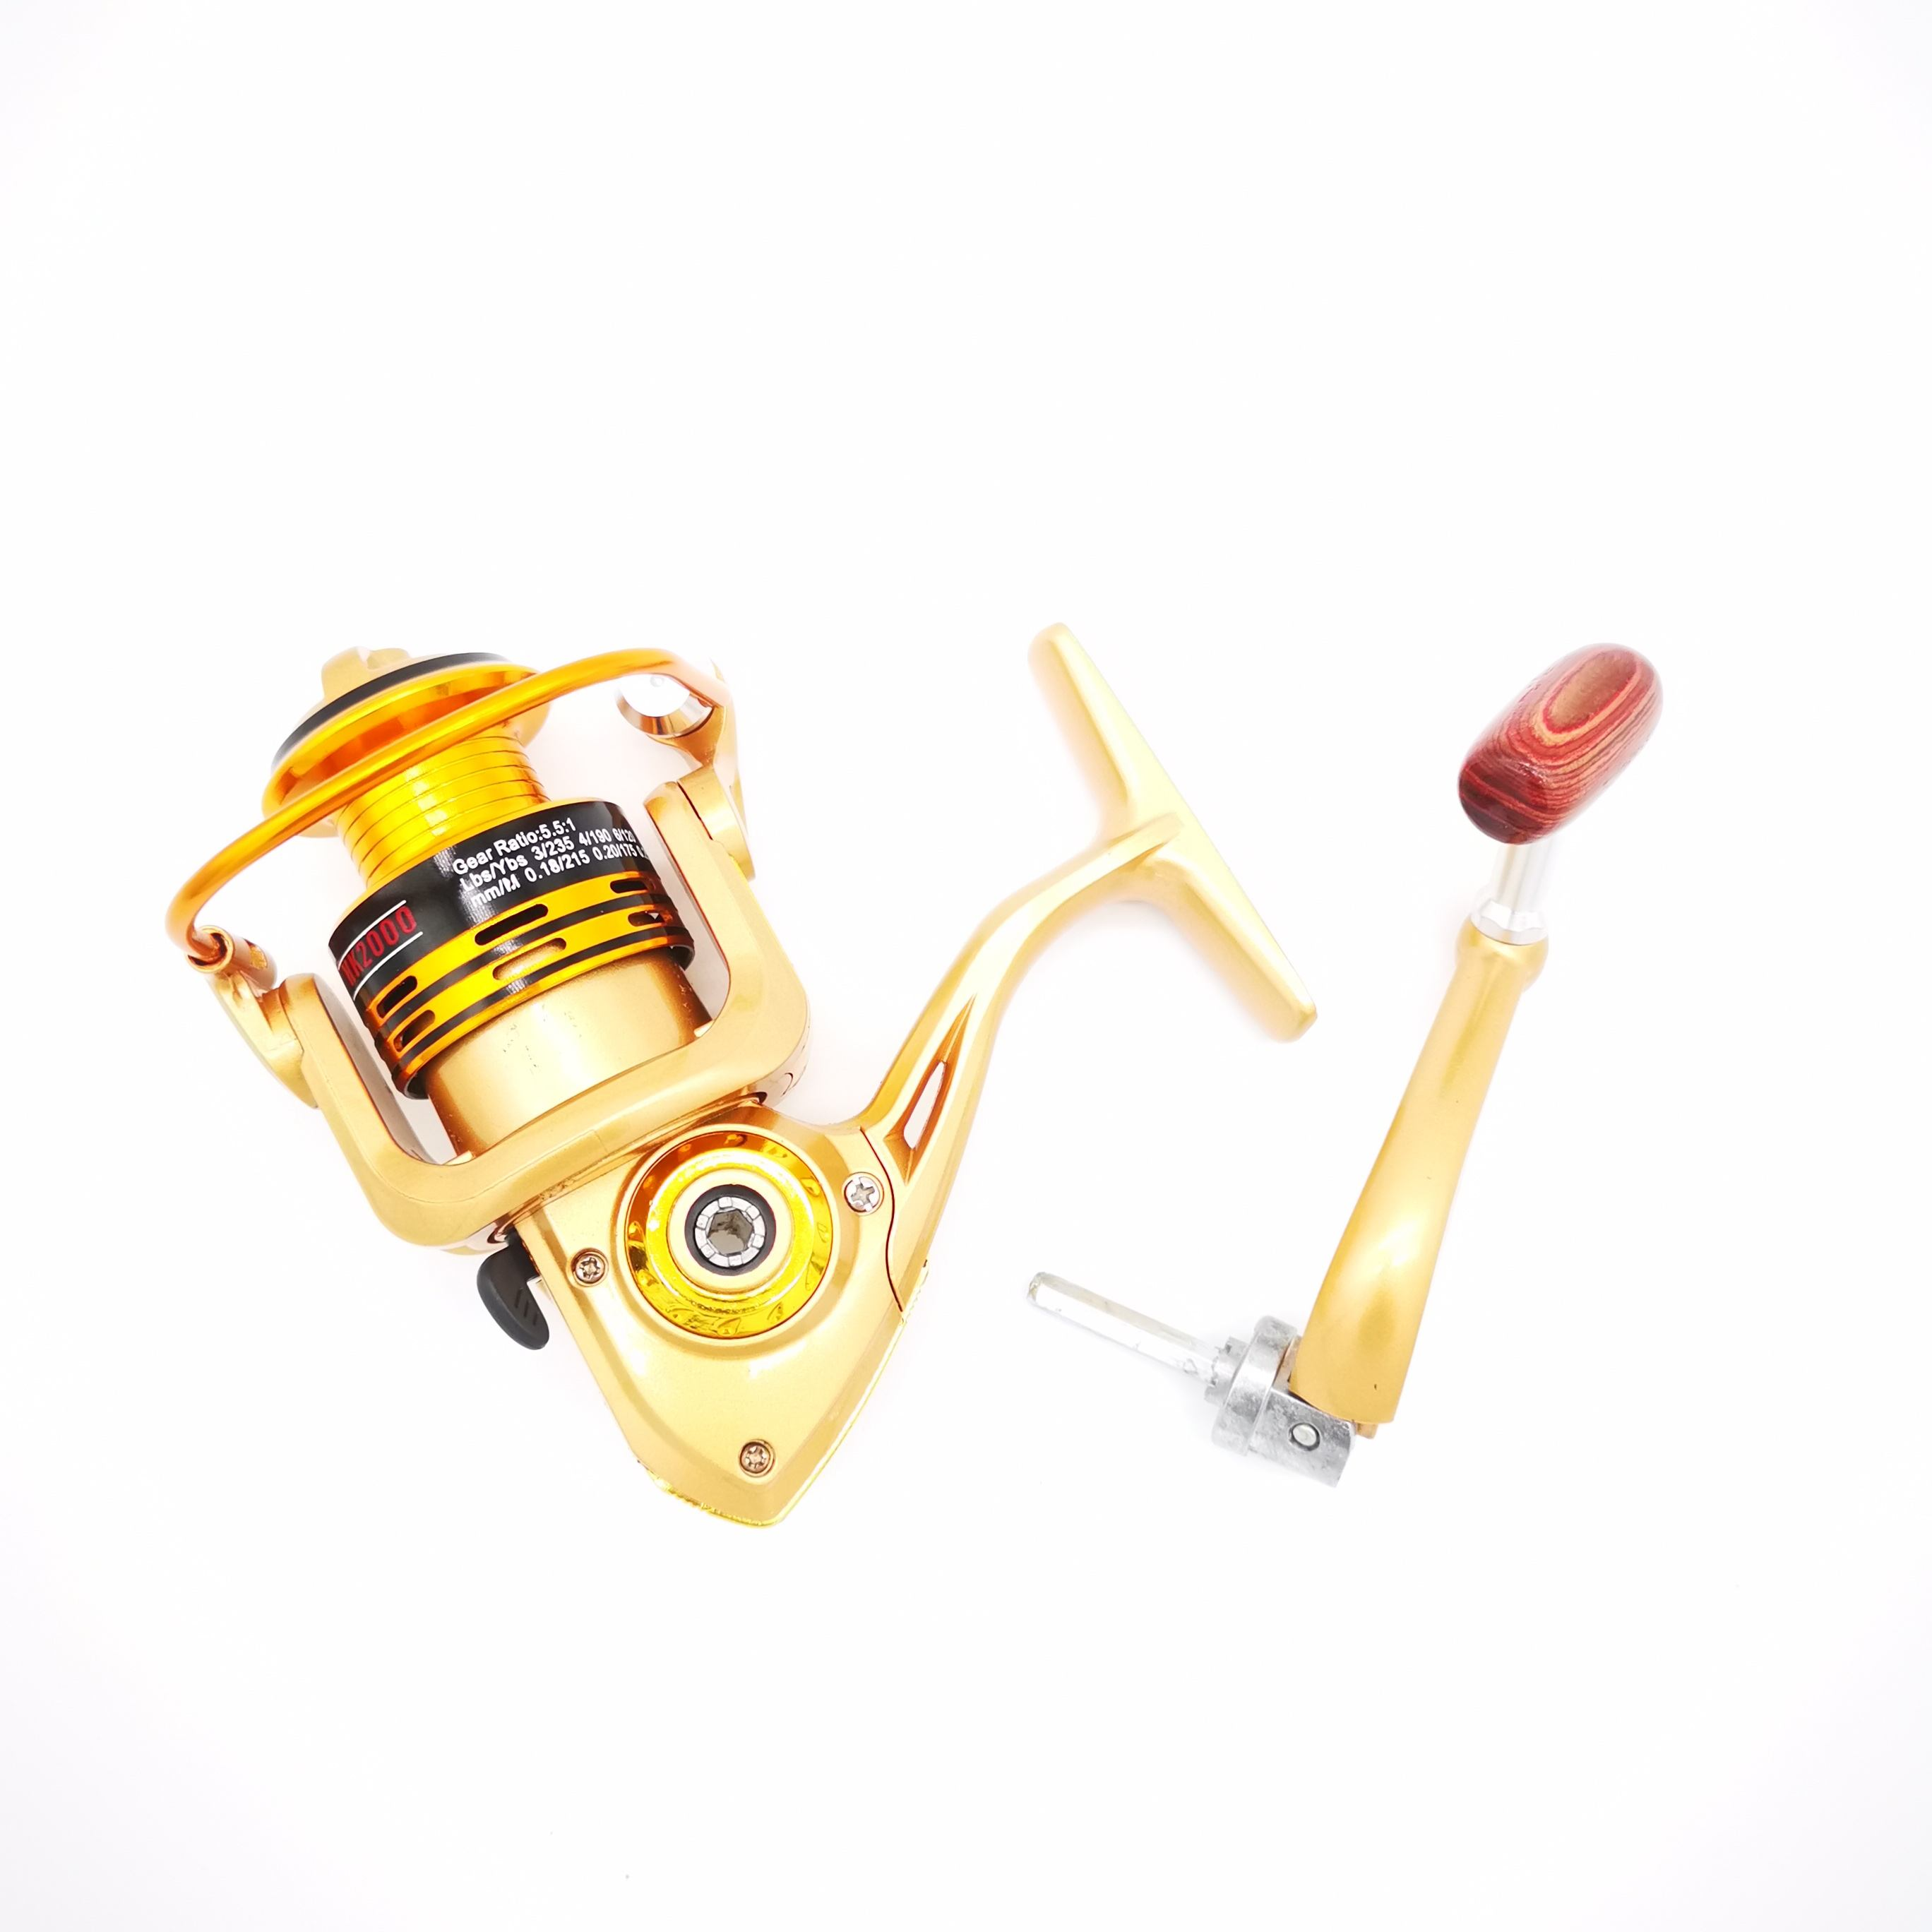 High performance customized steel fishing reel with woodern handle for fishing rod set